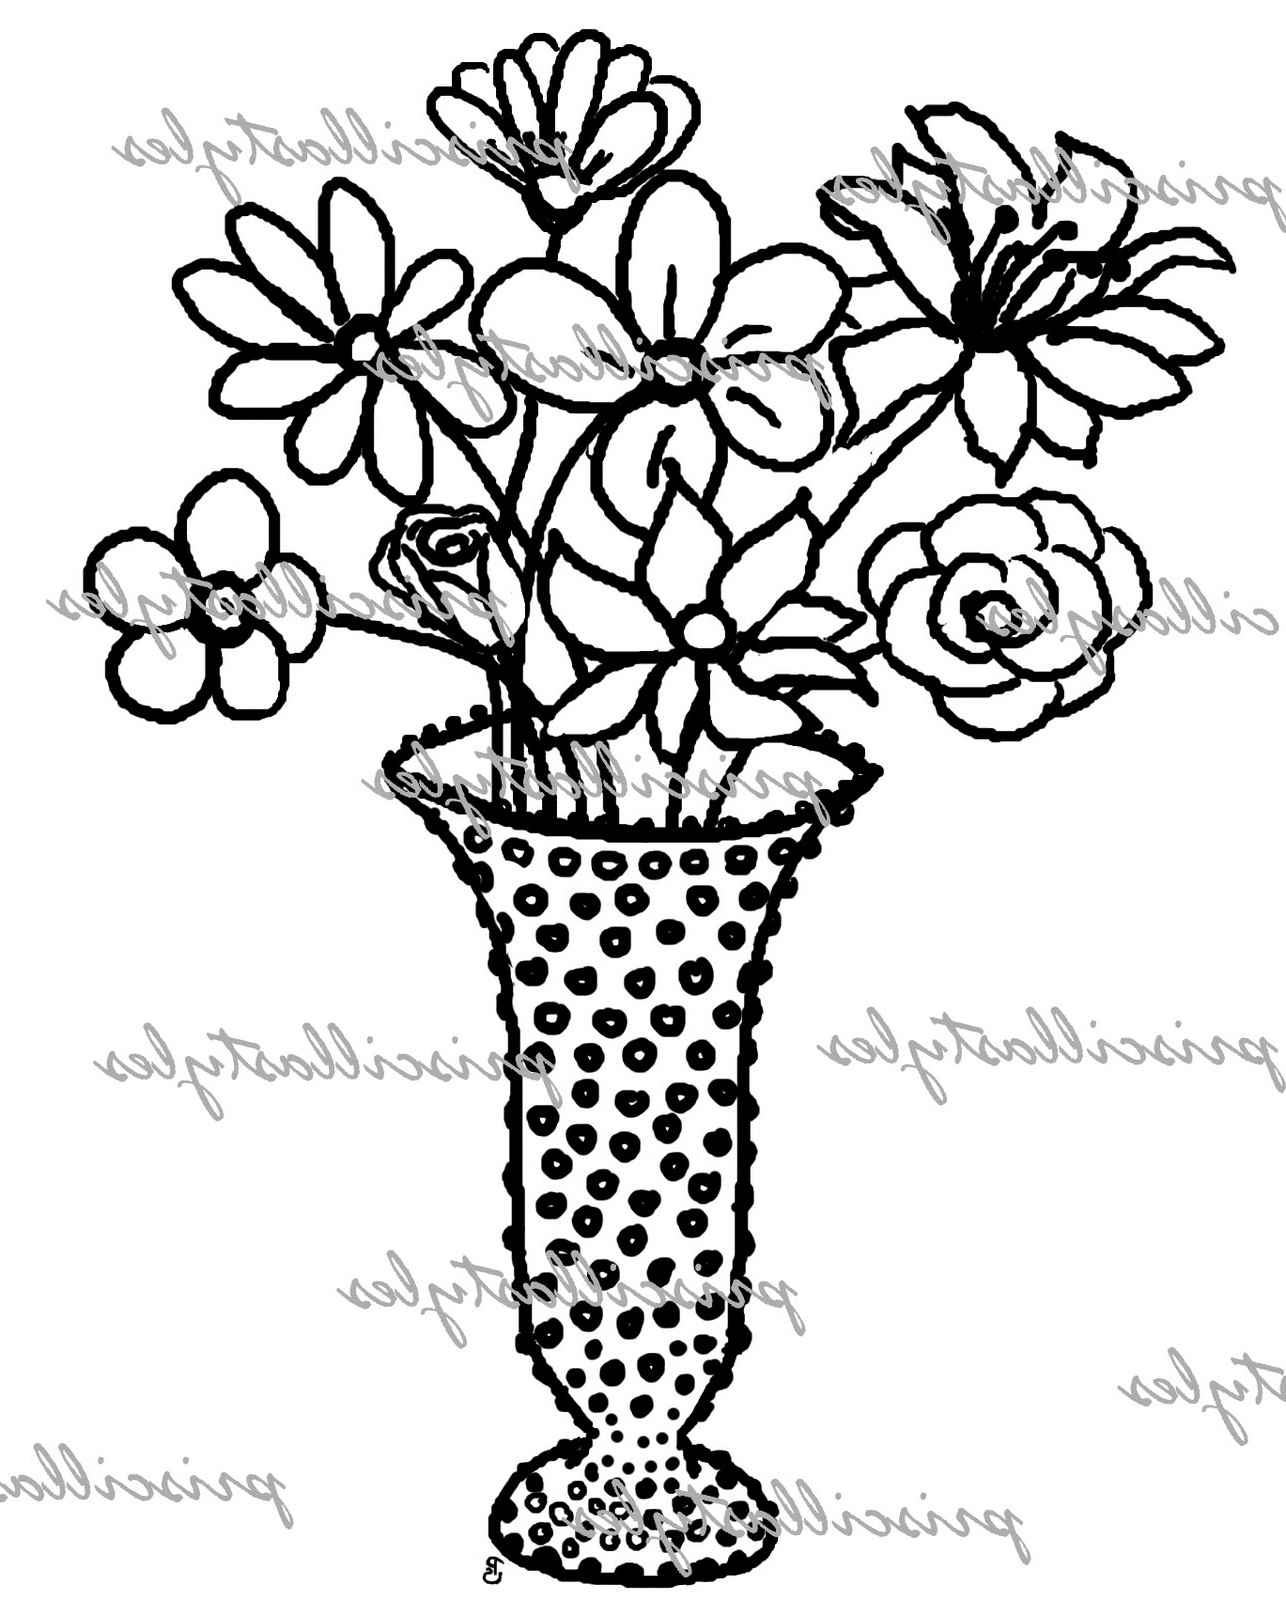 1286x1600 Flower Pots With Roses Drawings Easy Drawing Of Flowers Pot Design